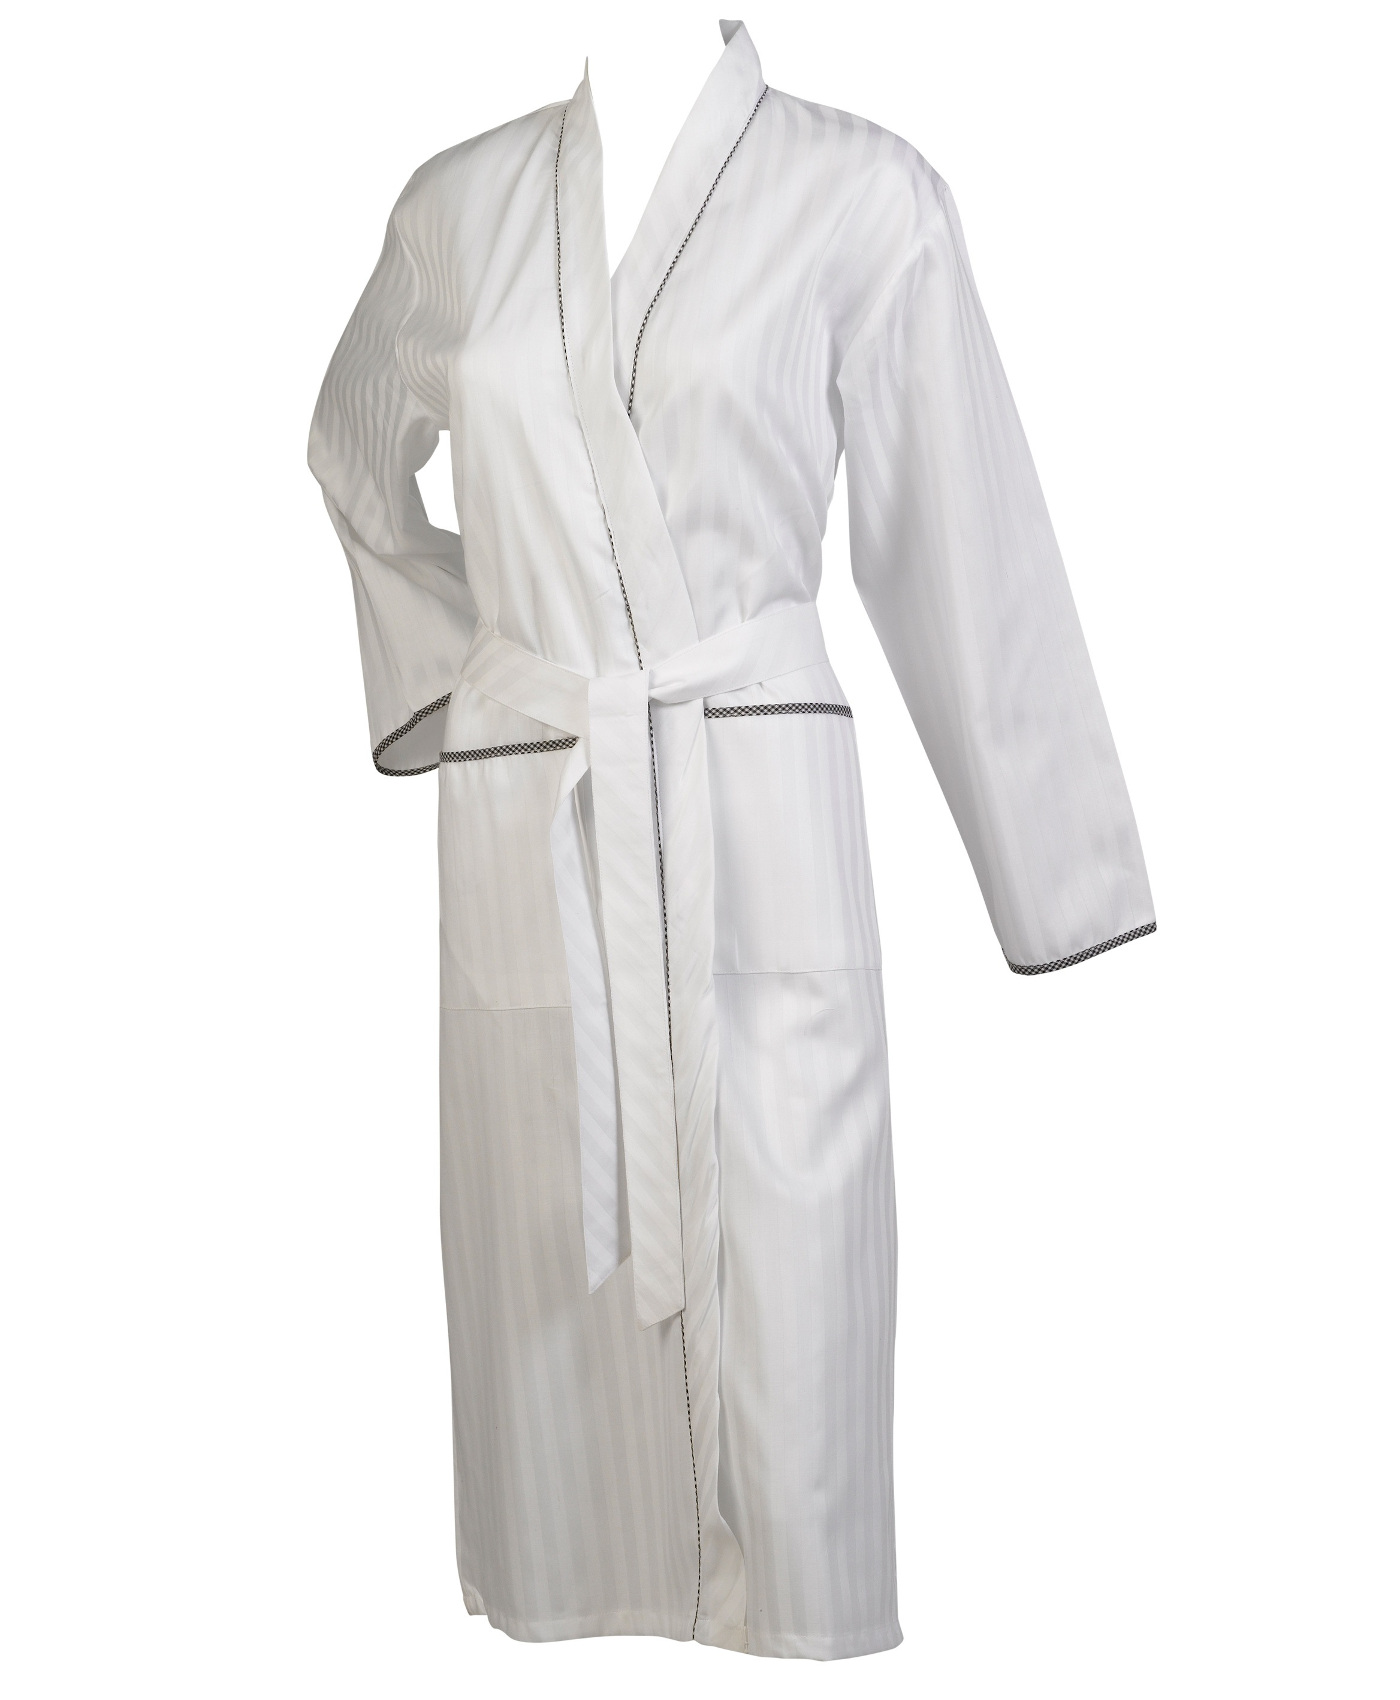 These ladies long sleeved dressing gowns have a satin stripe design  throughout with gingham check detail. They are a wrap around style with a  belt for ... 49d8ee5baff1